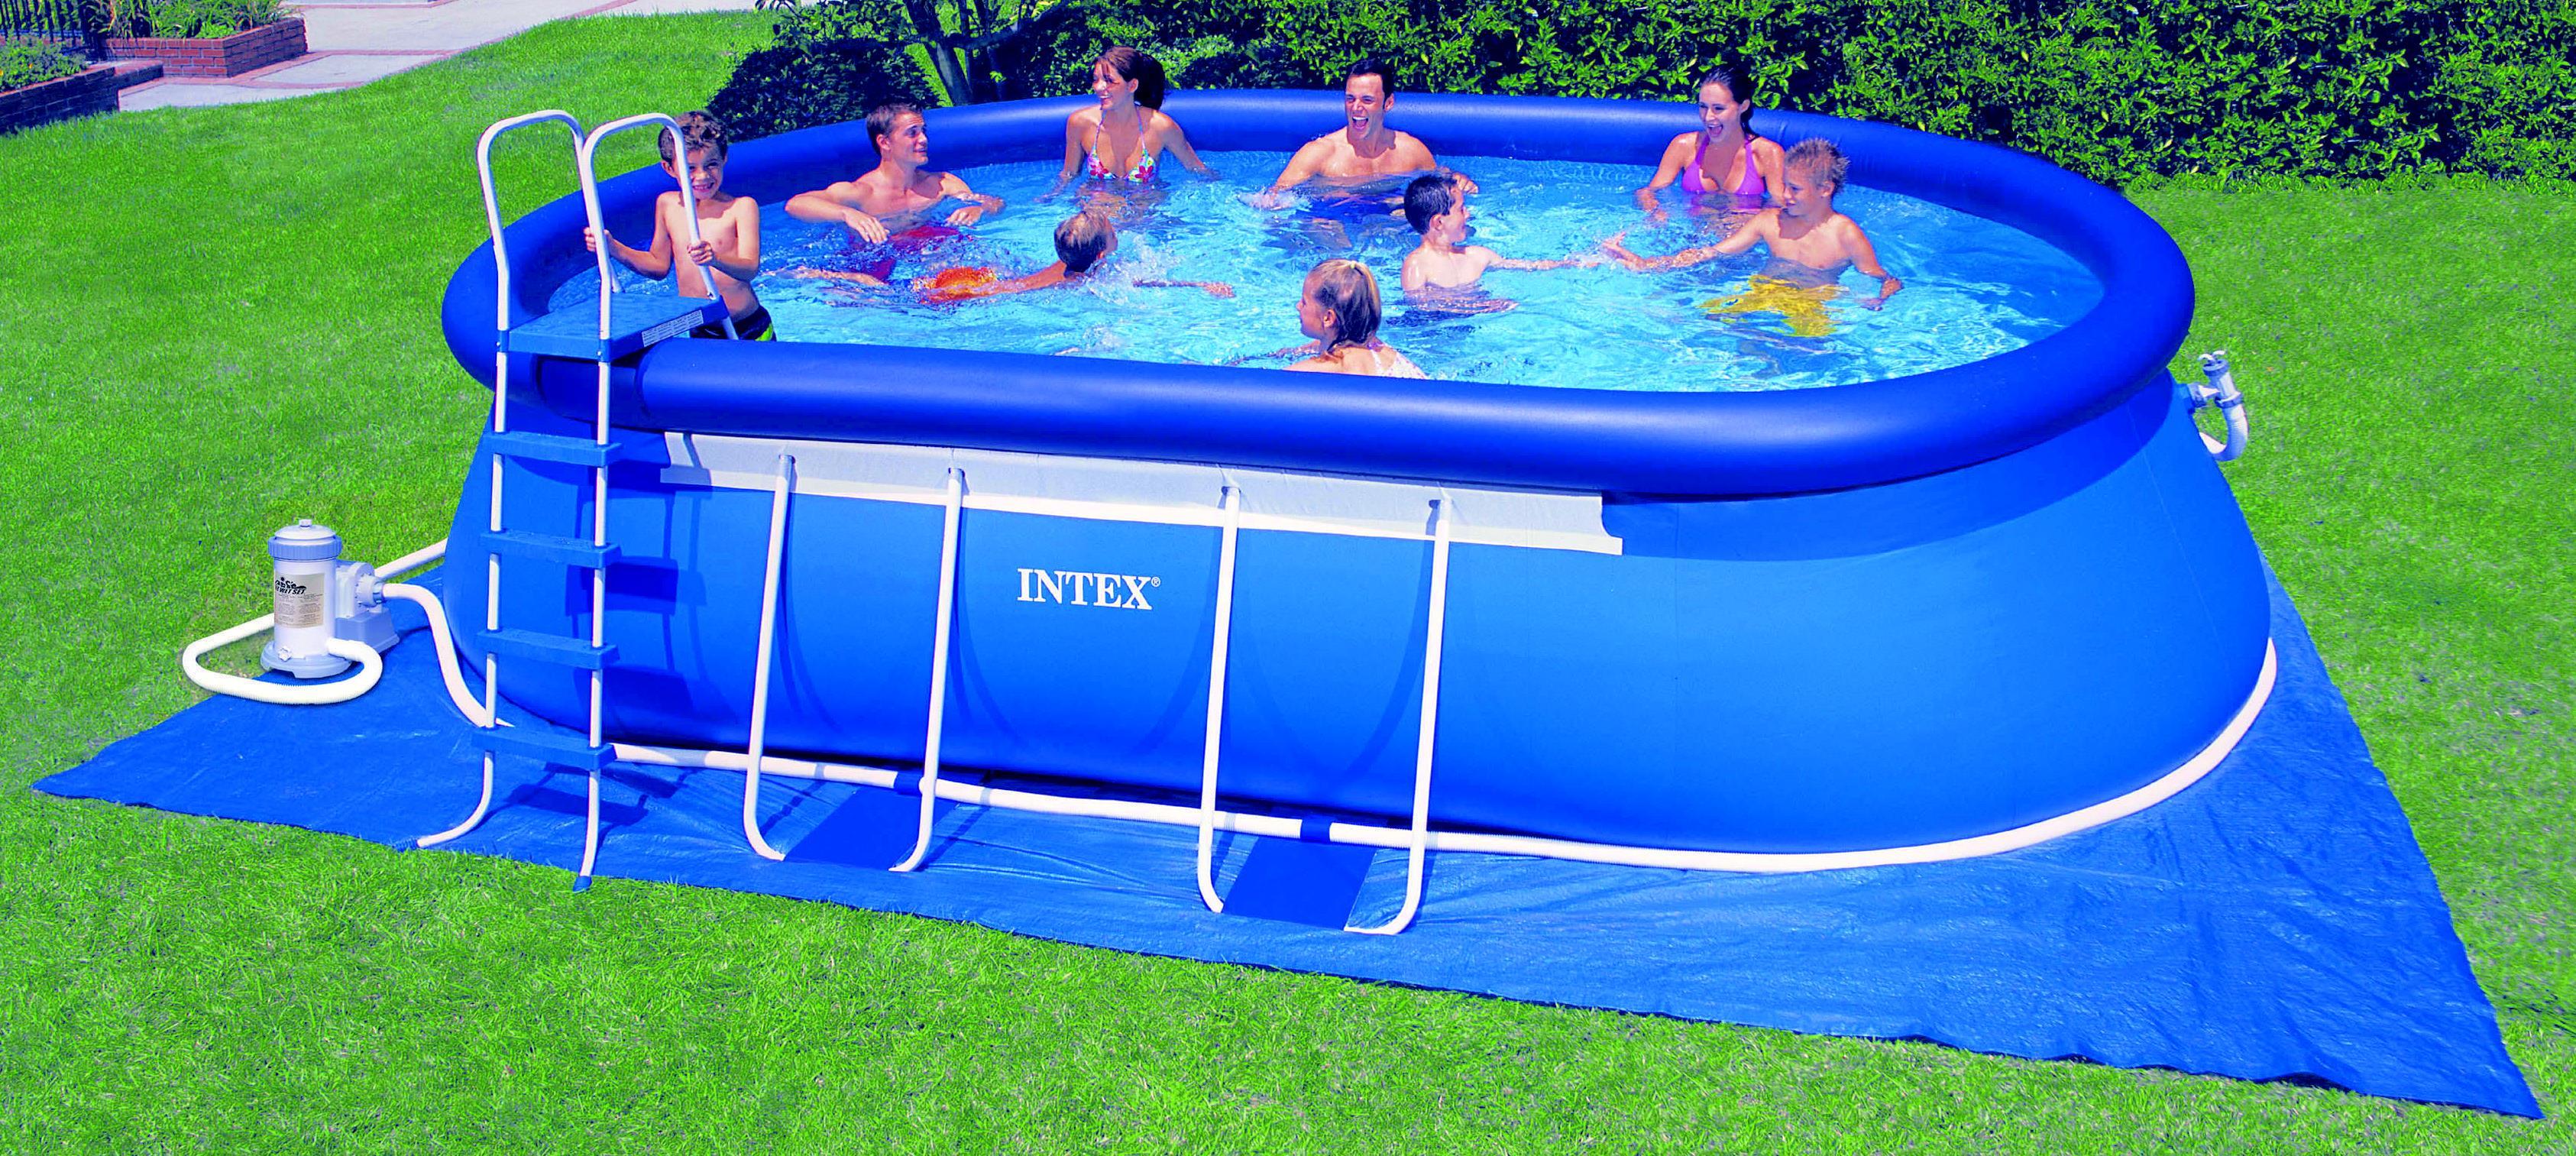 Frame Pool Set Ultra Quadra Ii Mit Salzwassersystem Frame Pool Set Quotovalo Quot Von Intex Bei Bavchem Shop De